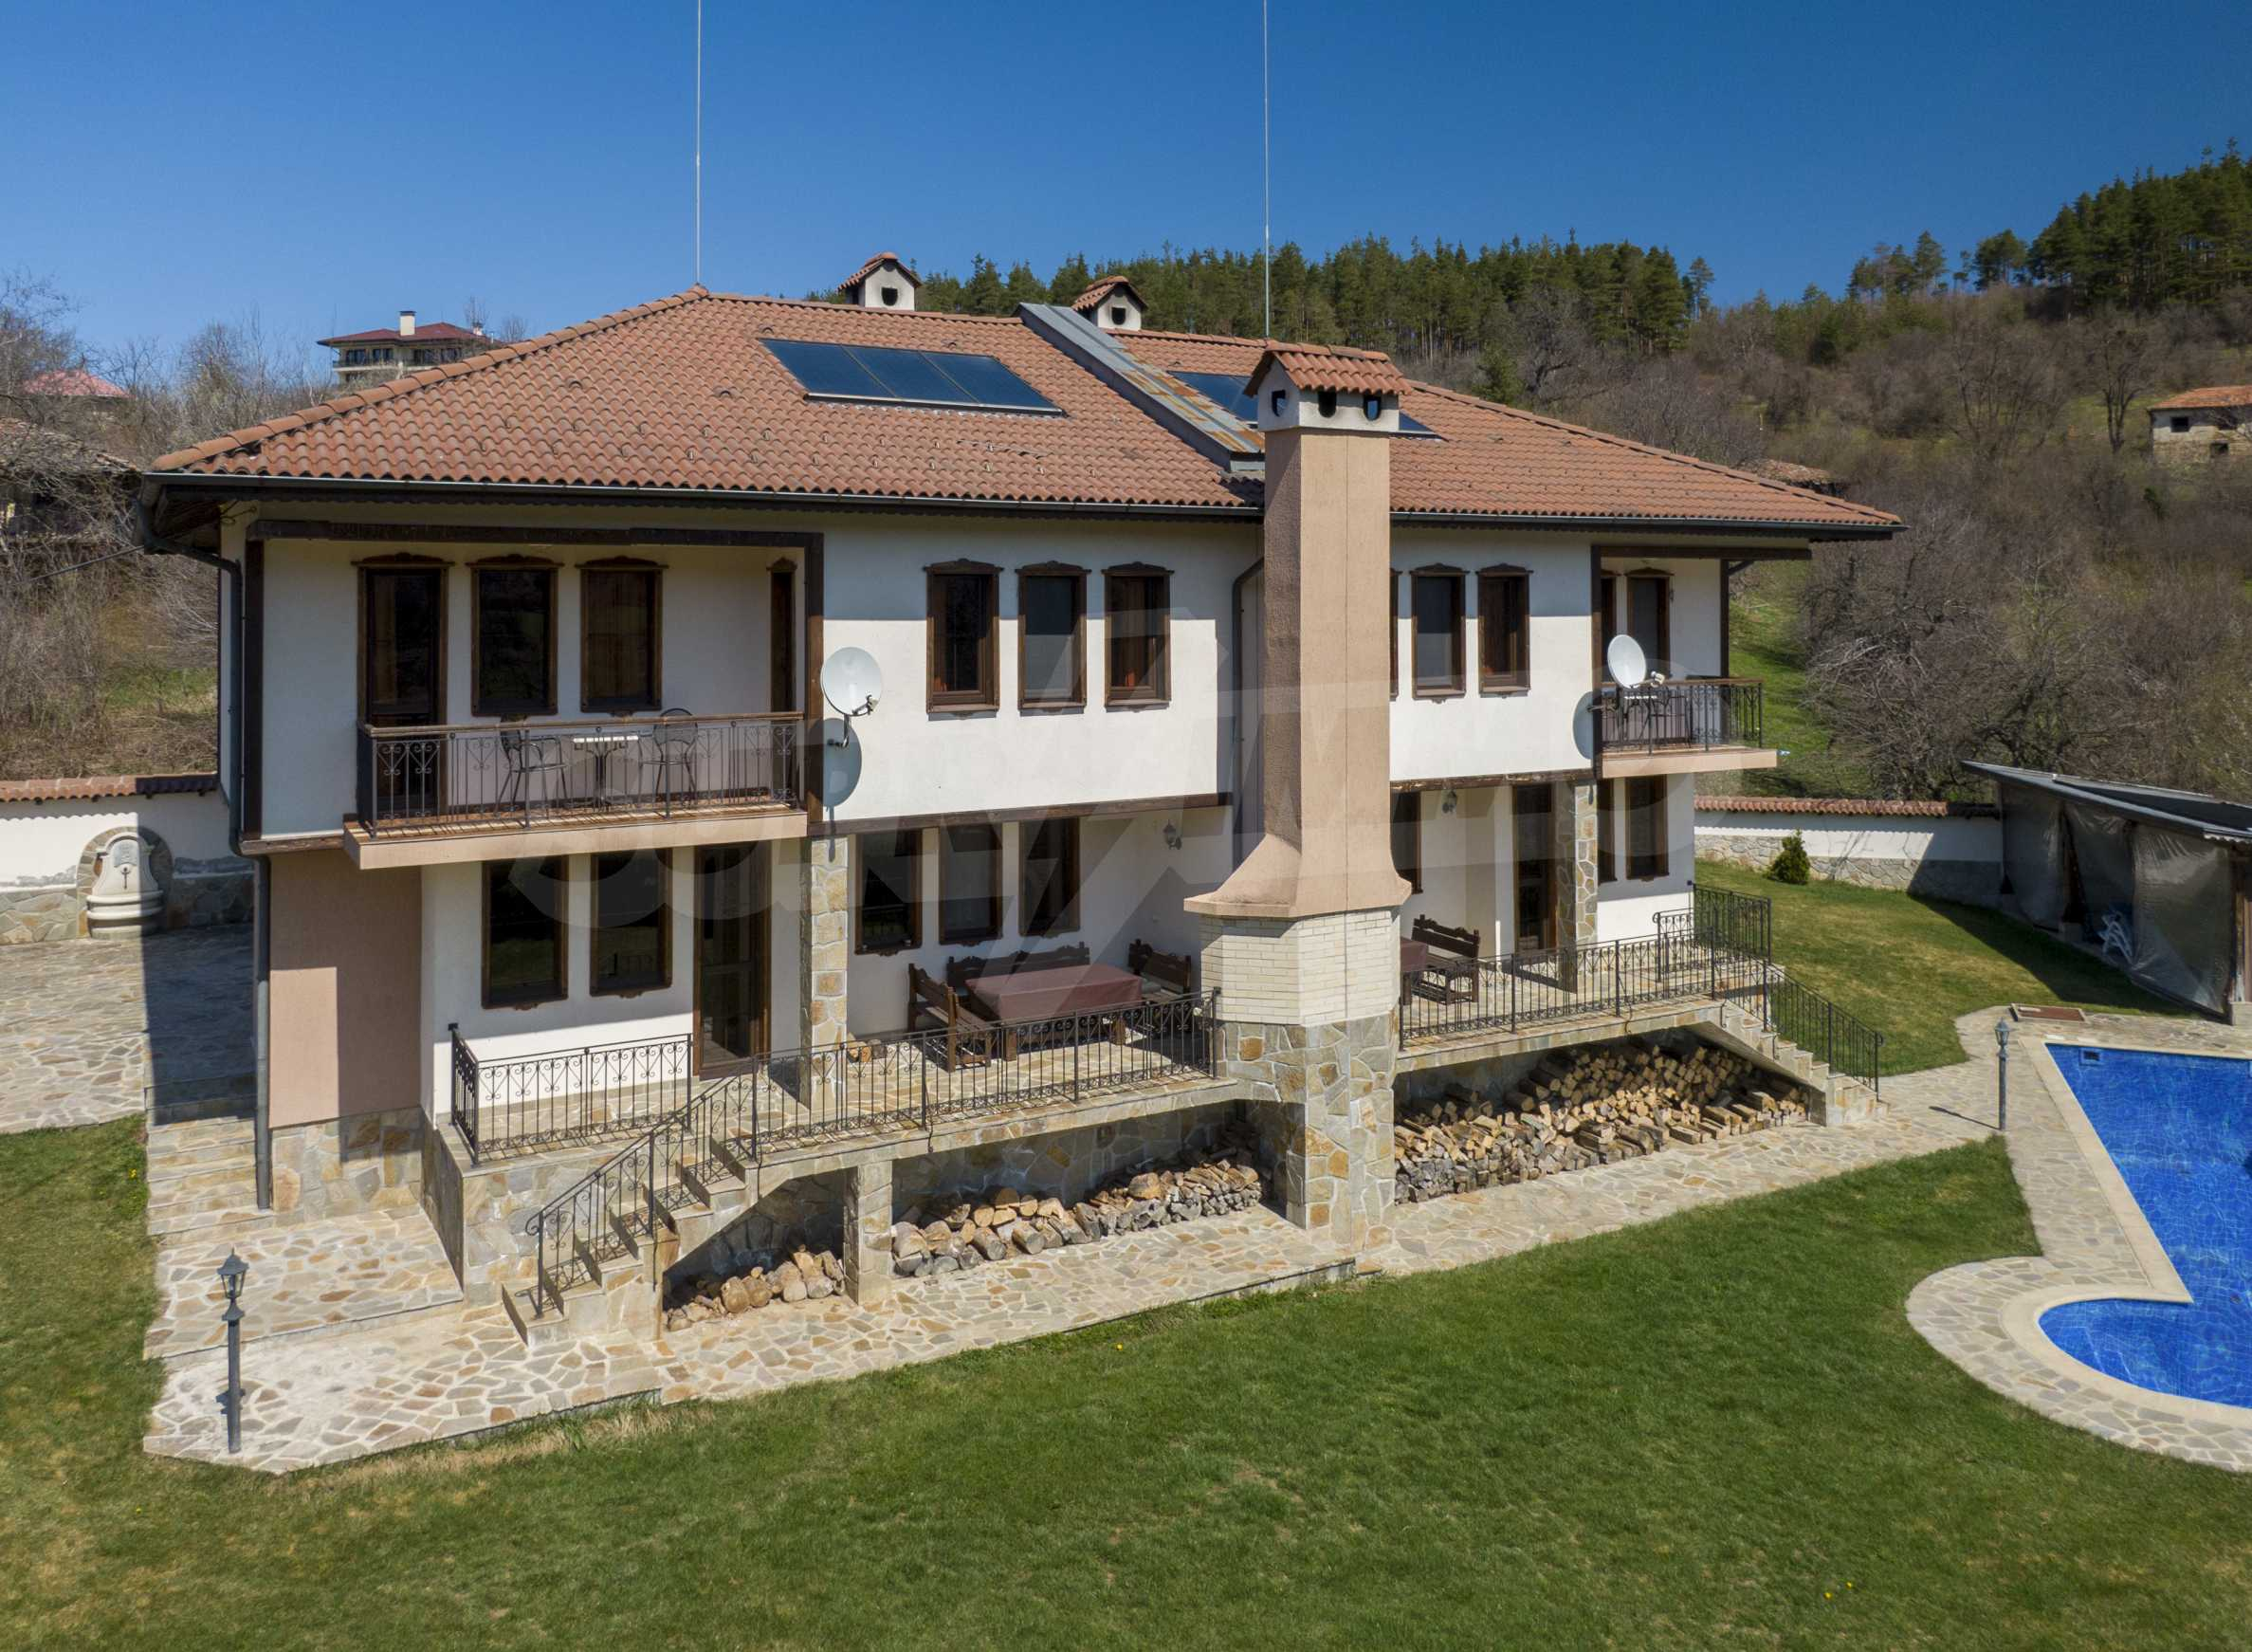 Two houses with swimming pool located close to a lake 7